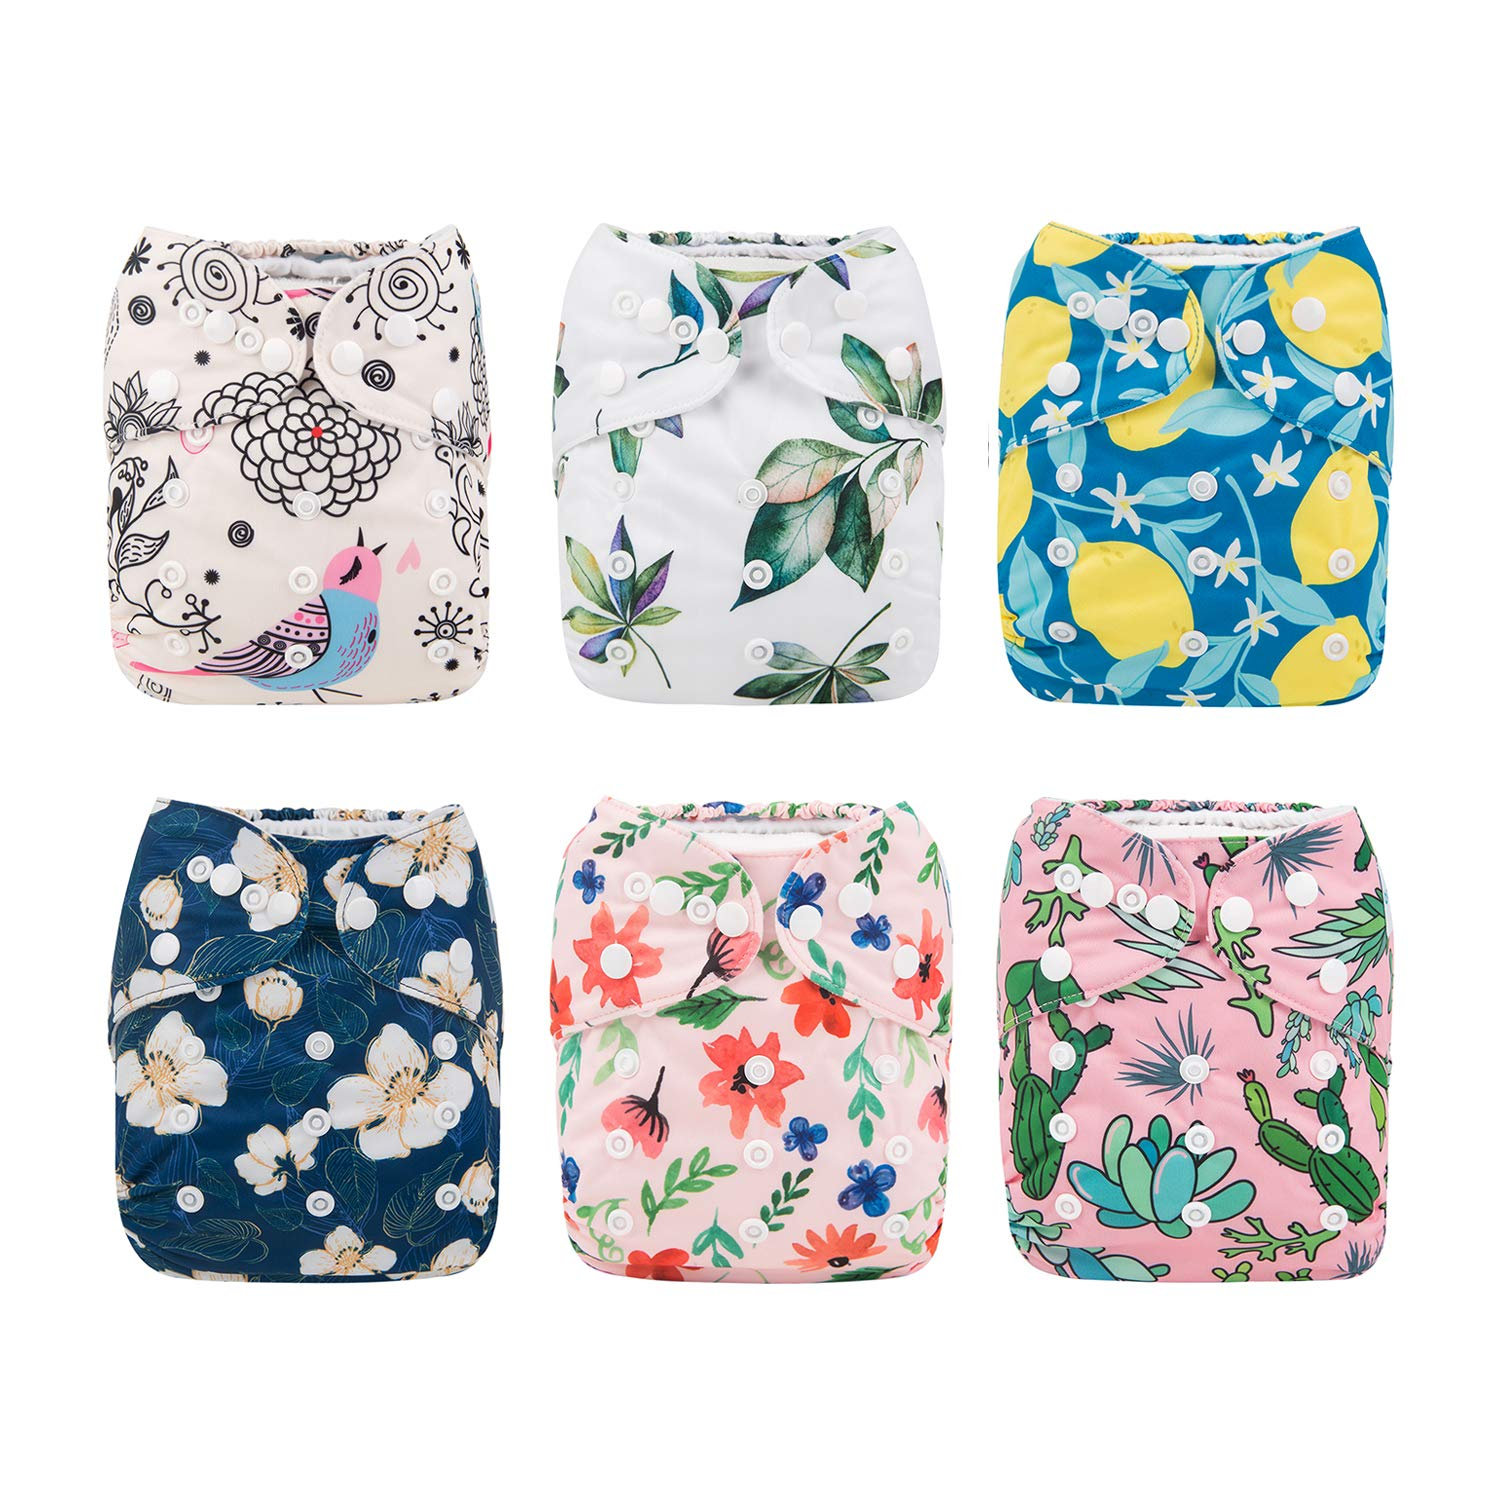 Babygoal Baby Girl Cloth Diapers, Adjustable Reusable Pocket Nappy 6pcs Diapers+ 6pcs Microfiber Inserts+4pcs Bamboo Inserts 6FG10 Huapin